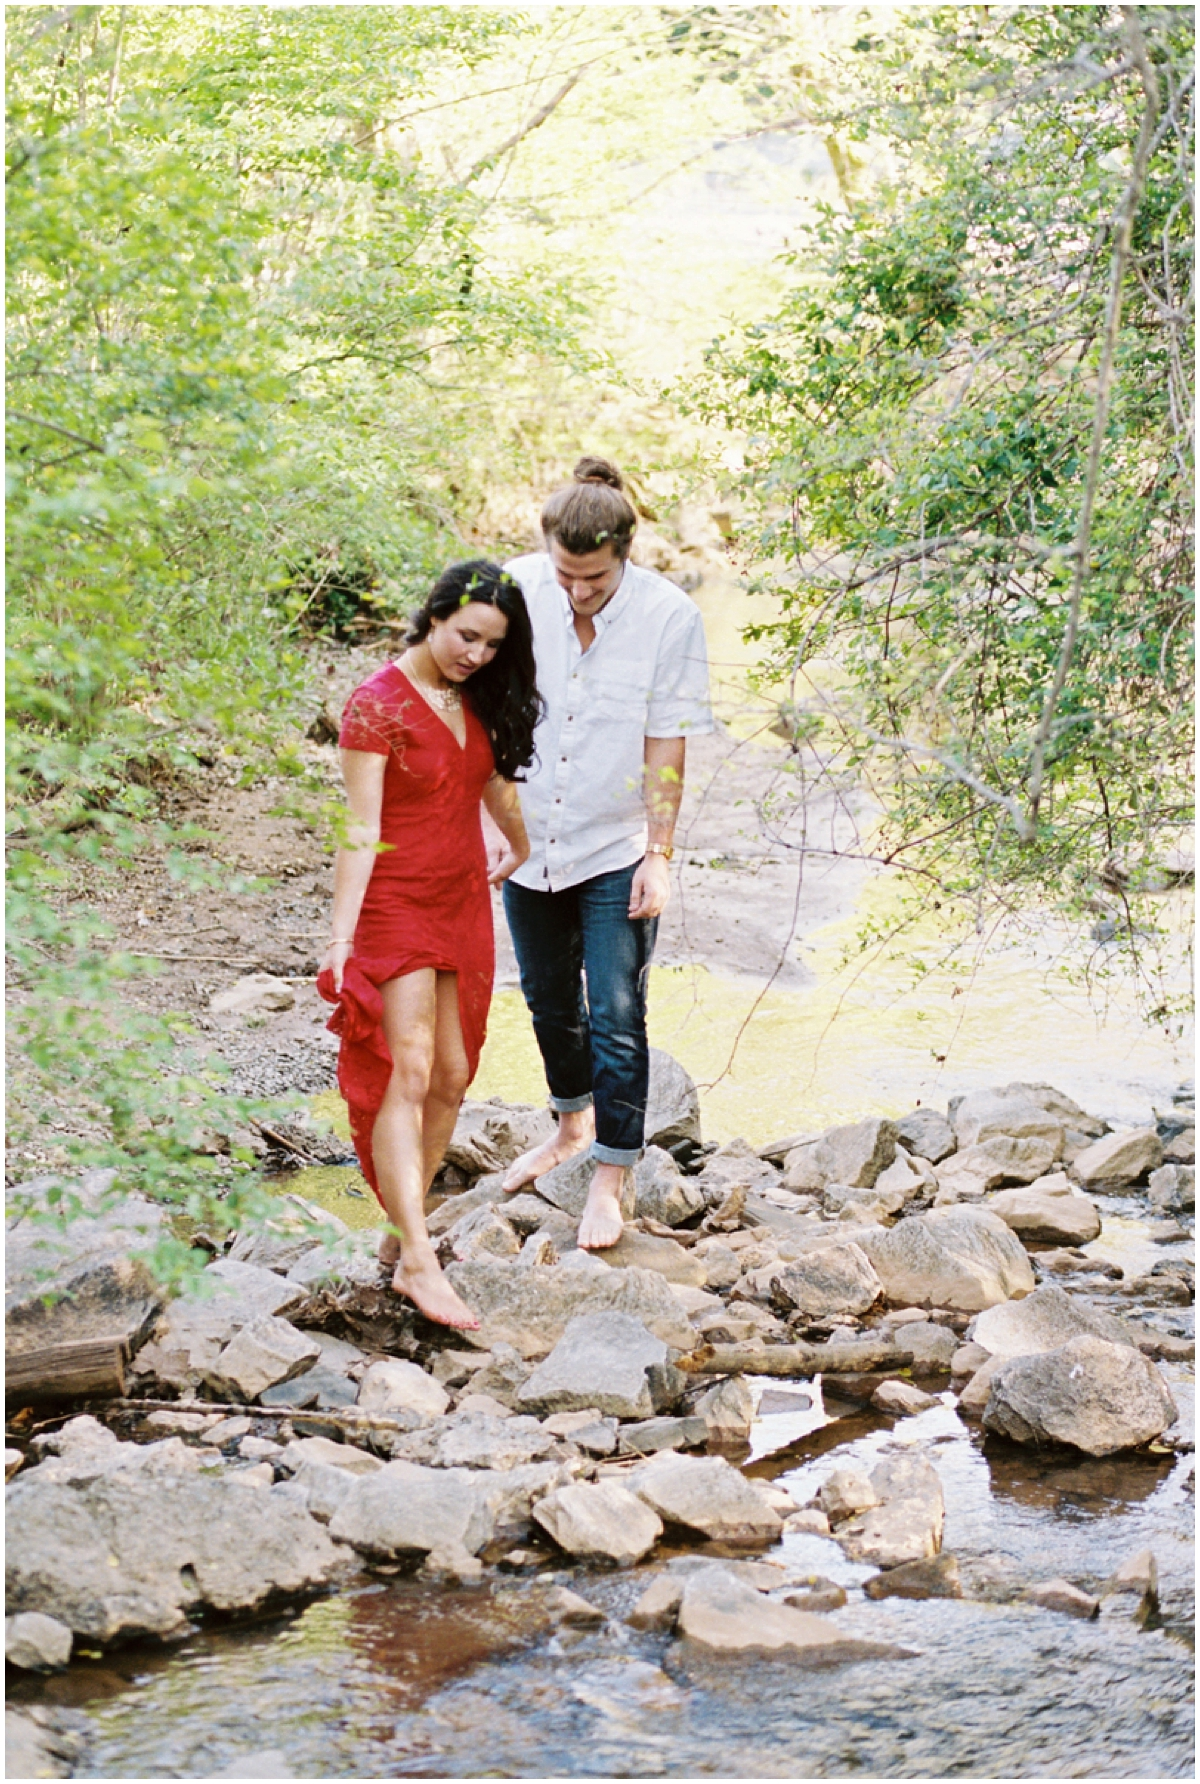 Abigail_Malone_Daras_Garden_Engagement_Film_Photography_KNoxville-21.jpg